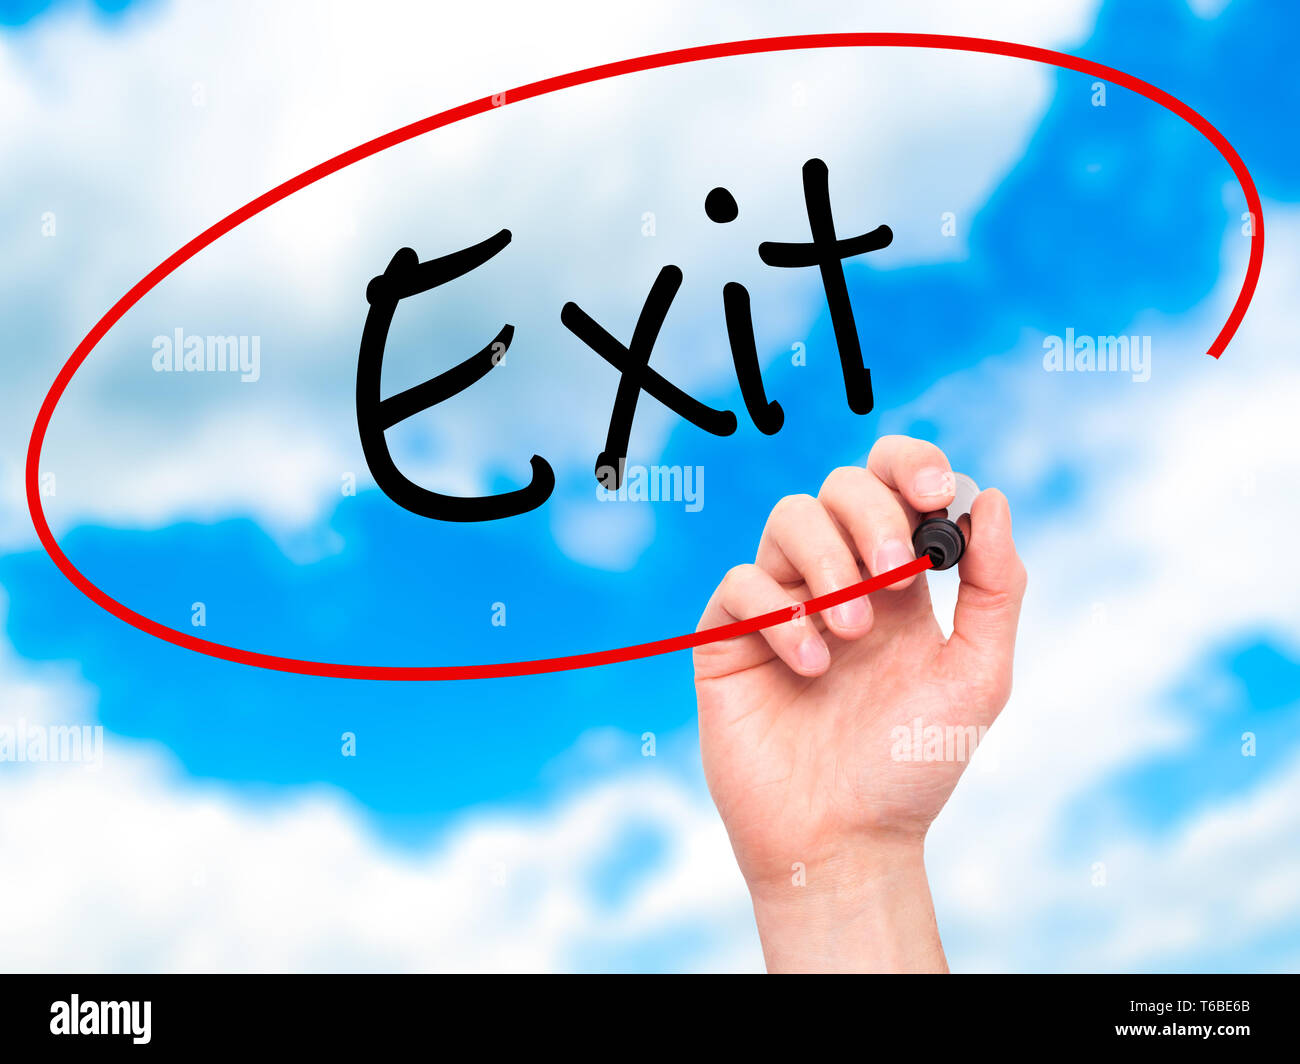 Man Hand writing Exit with black marker on visual screen - Stock Image